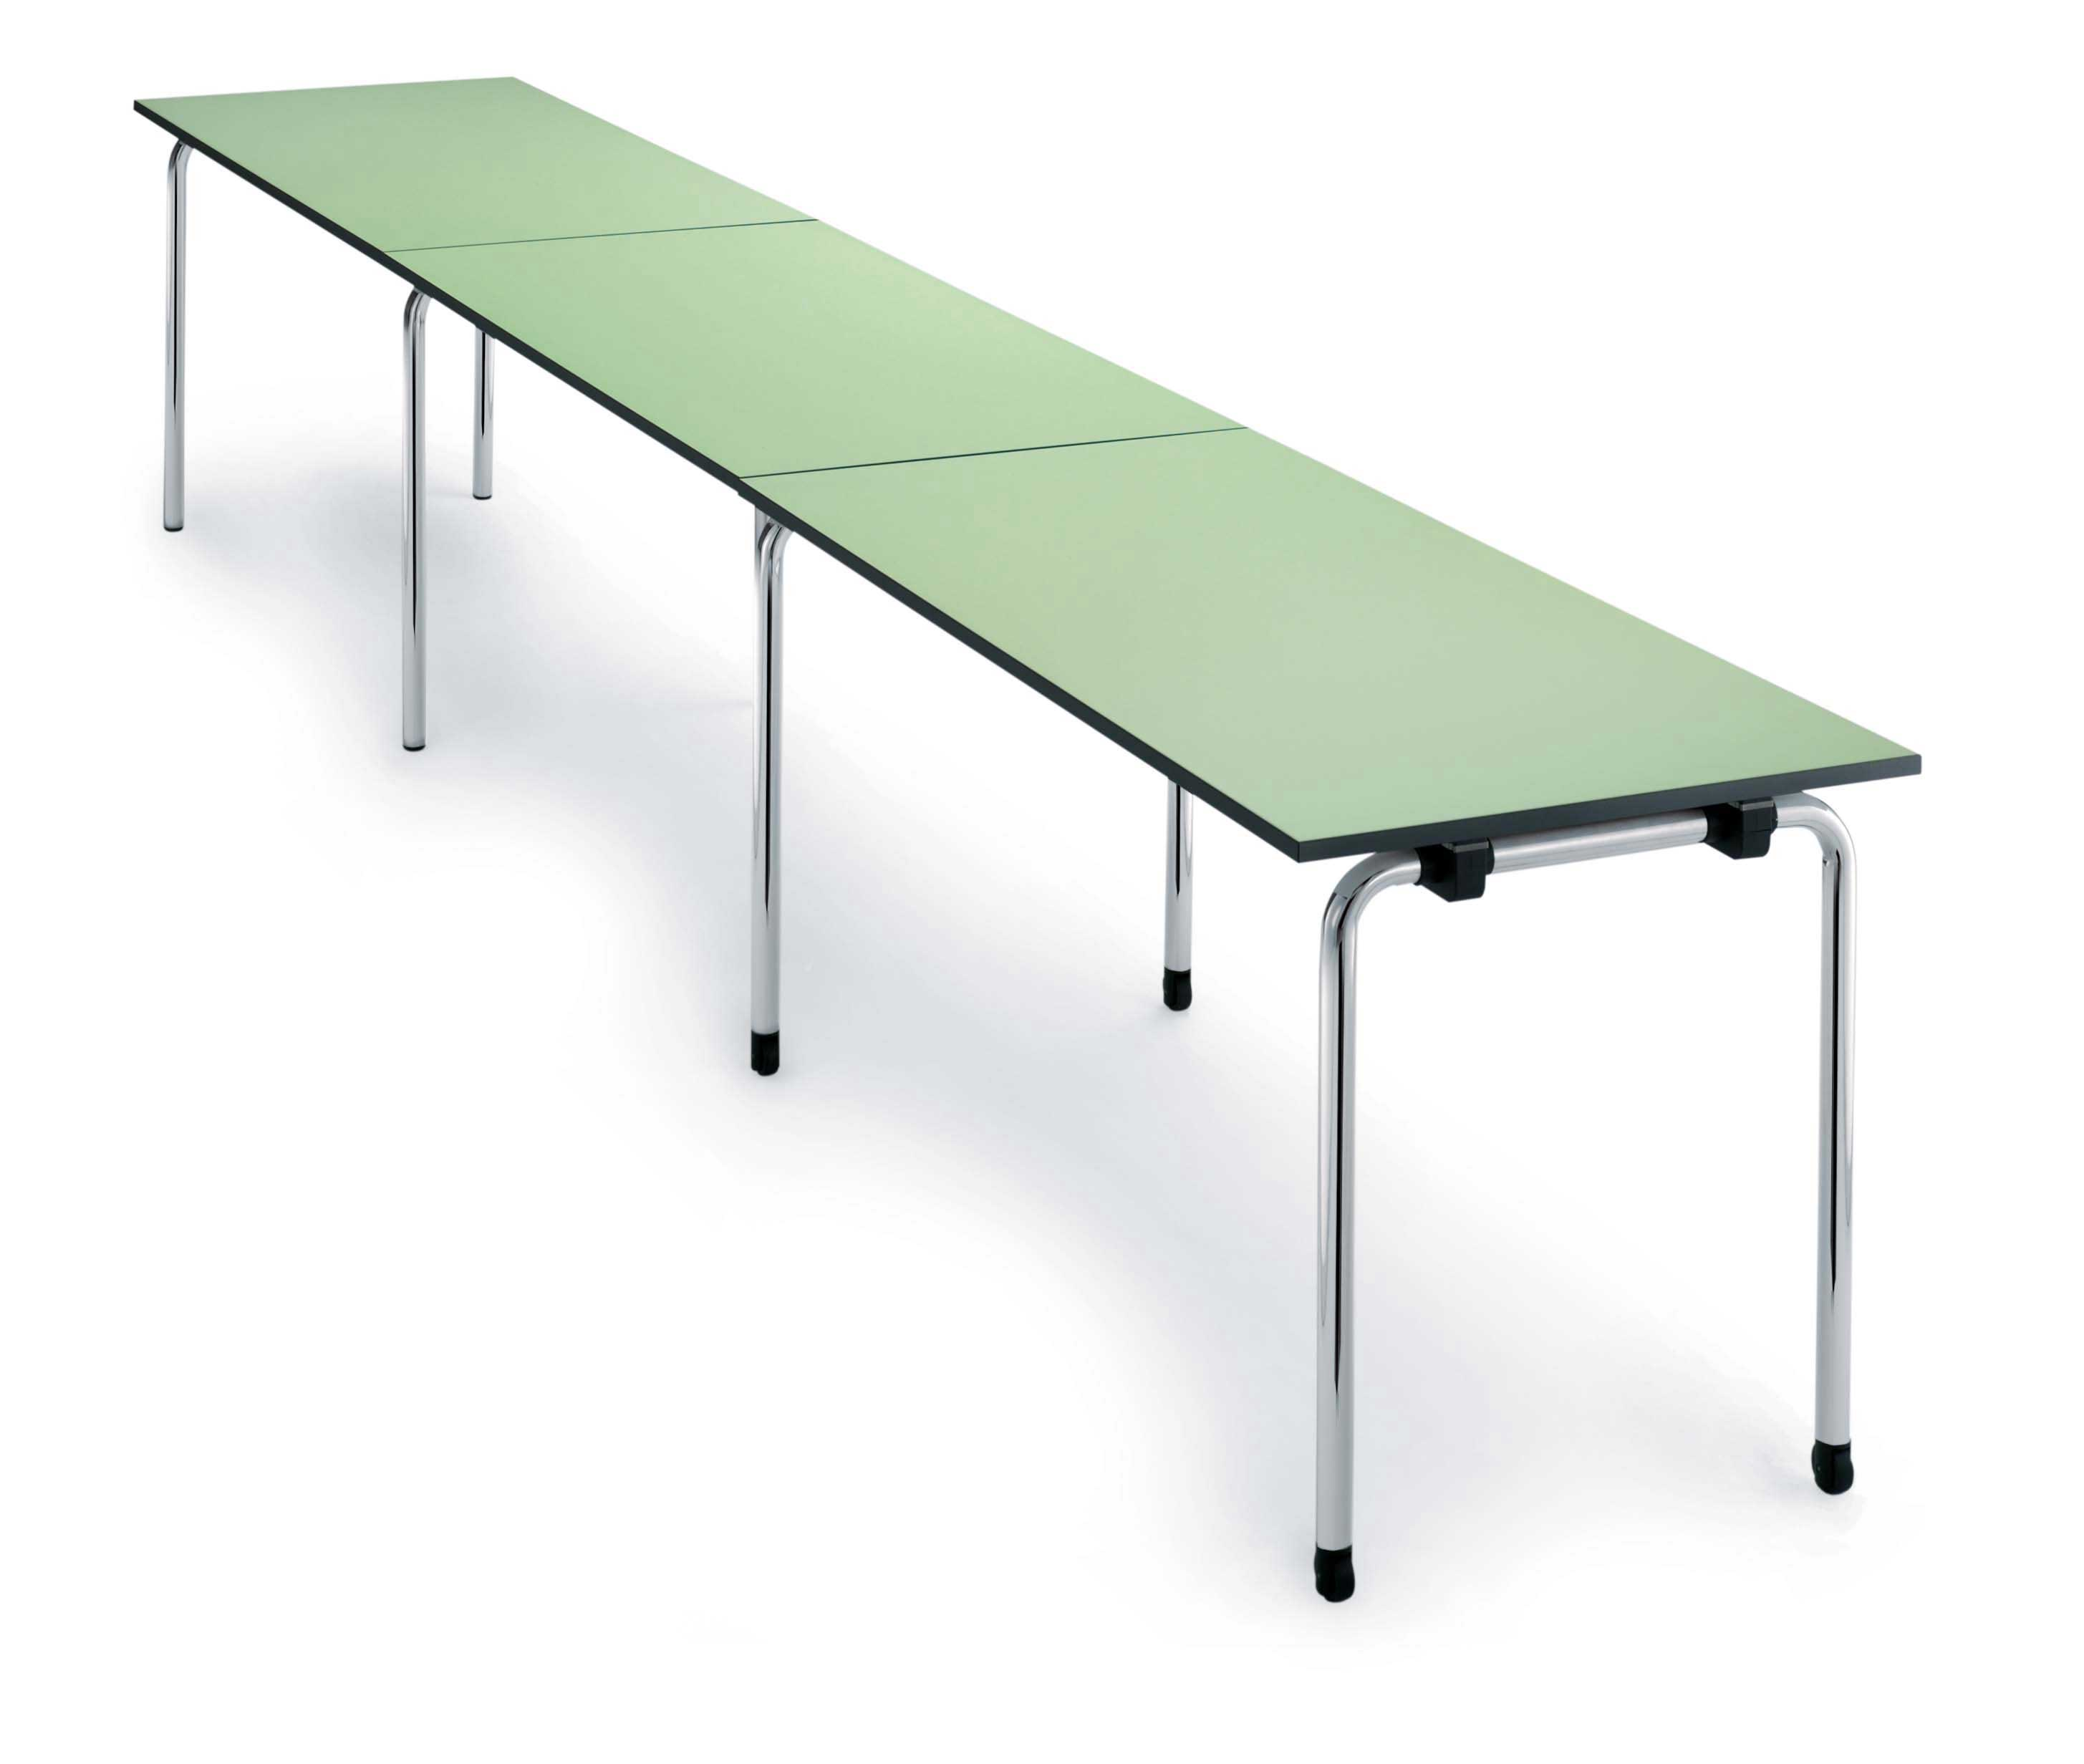 Modern Folding Table For Easy Assemble